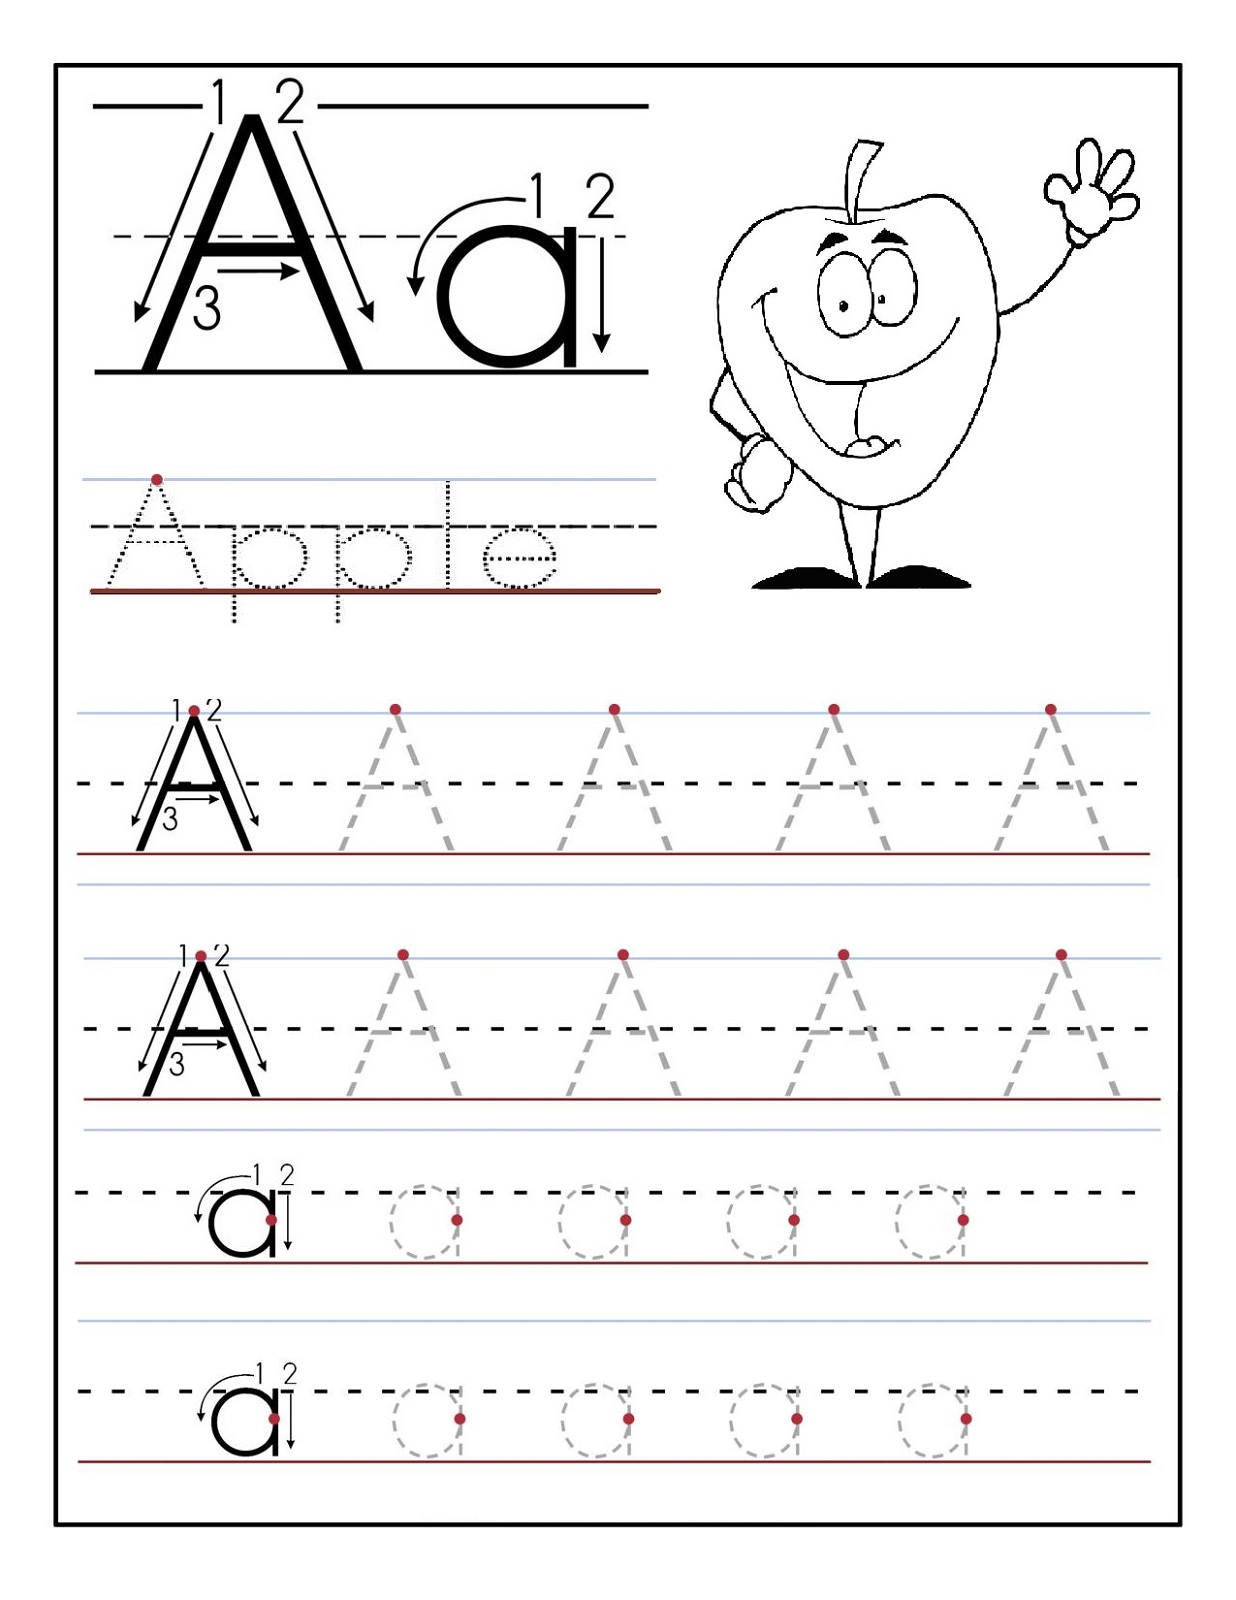 Worksheet Tracing Letters For Preschool recognizing and matching identical letters free reading worksheets preschool printables tracing